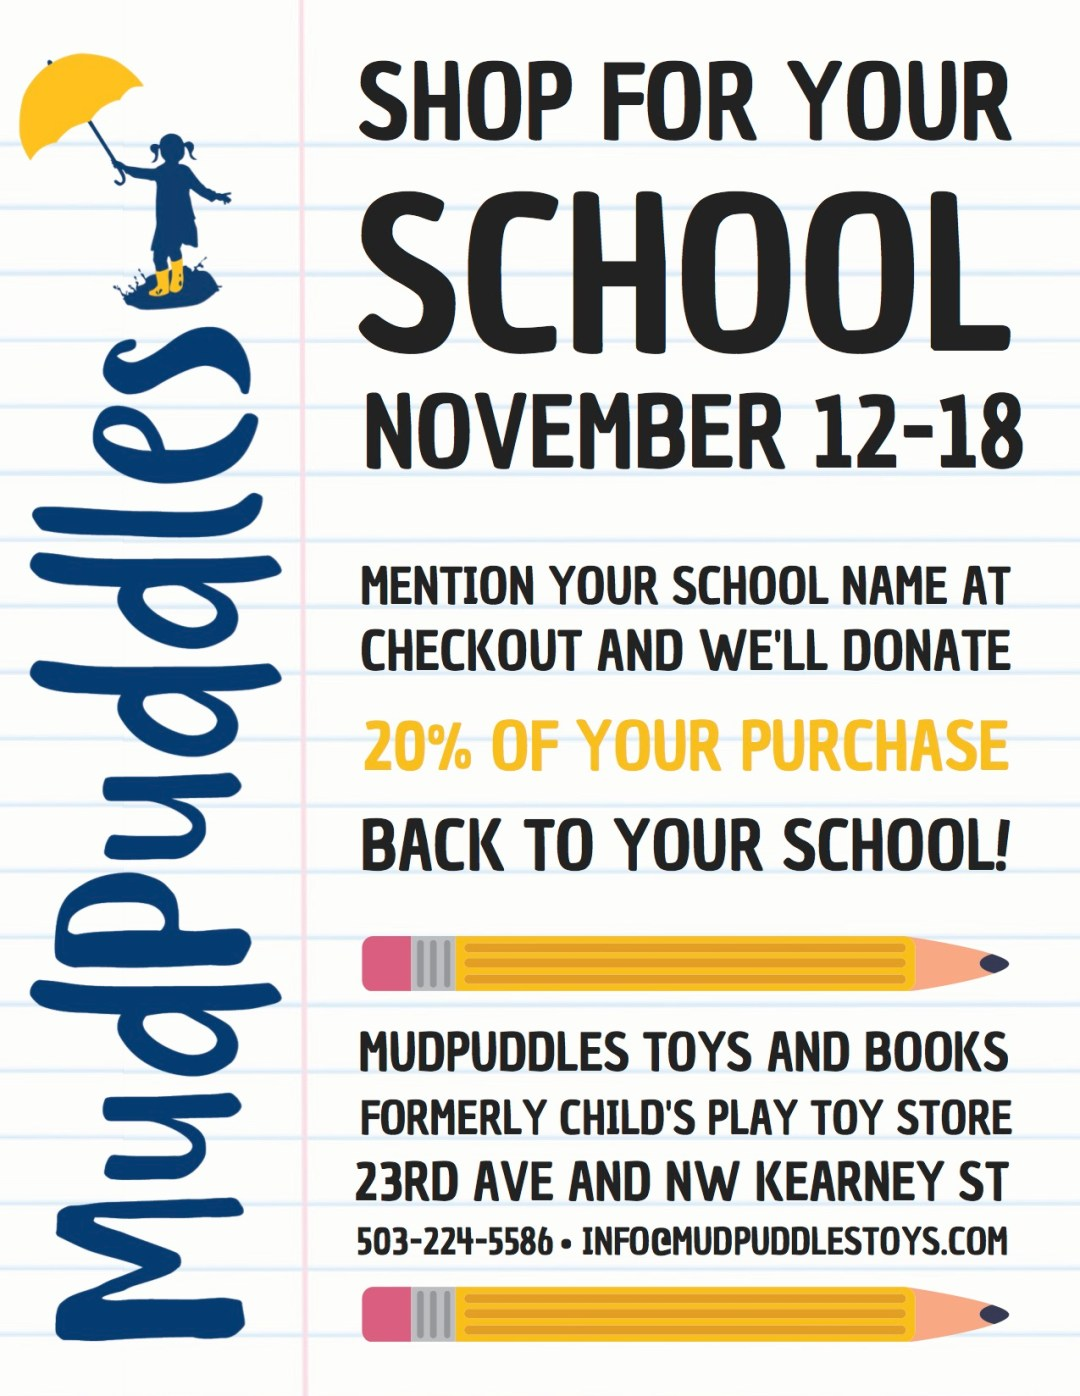 shop for your school page 1